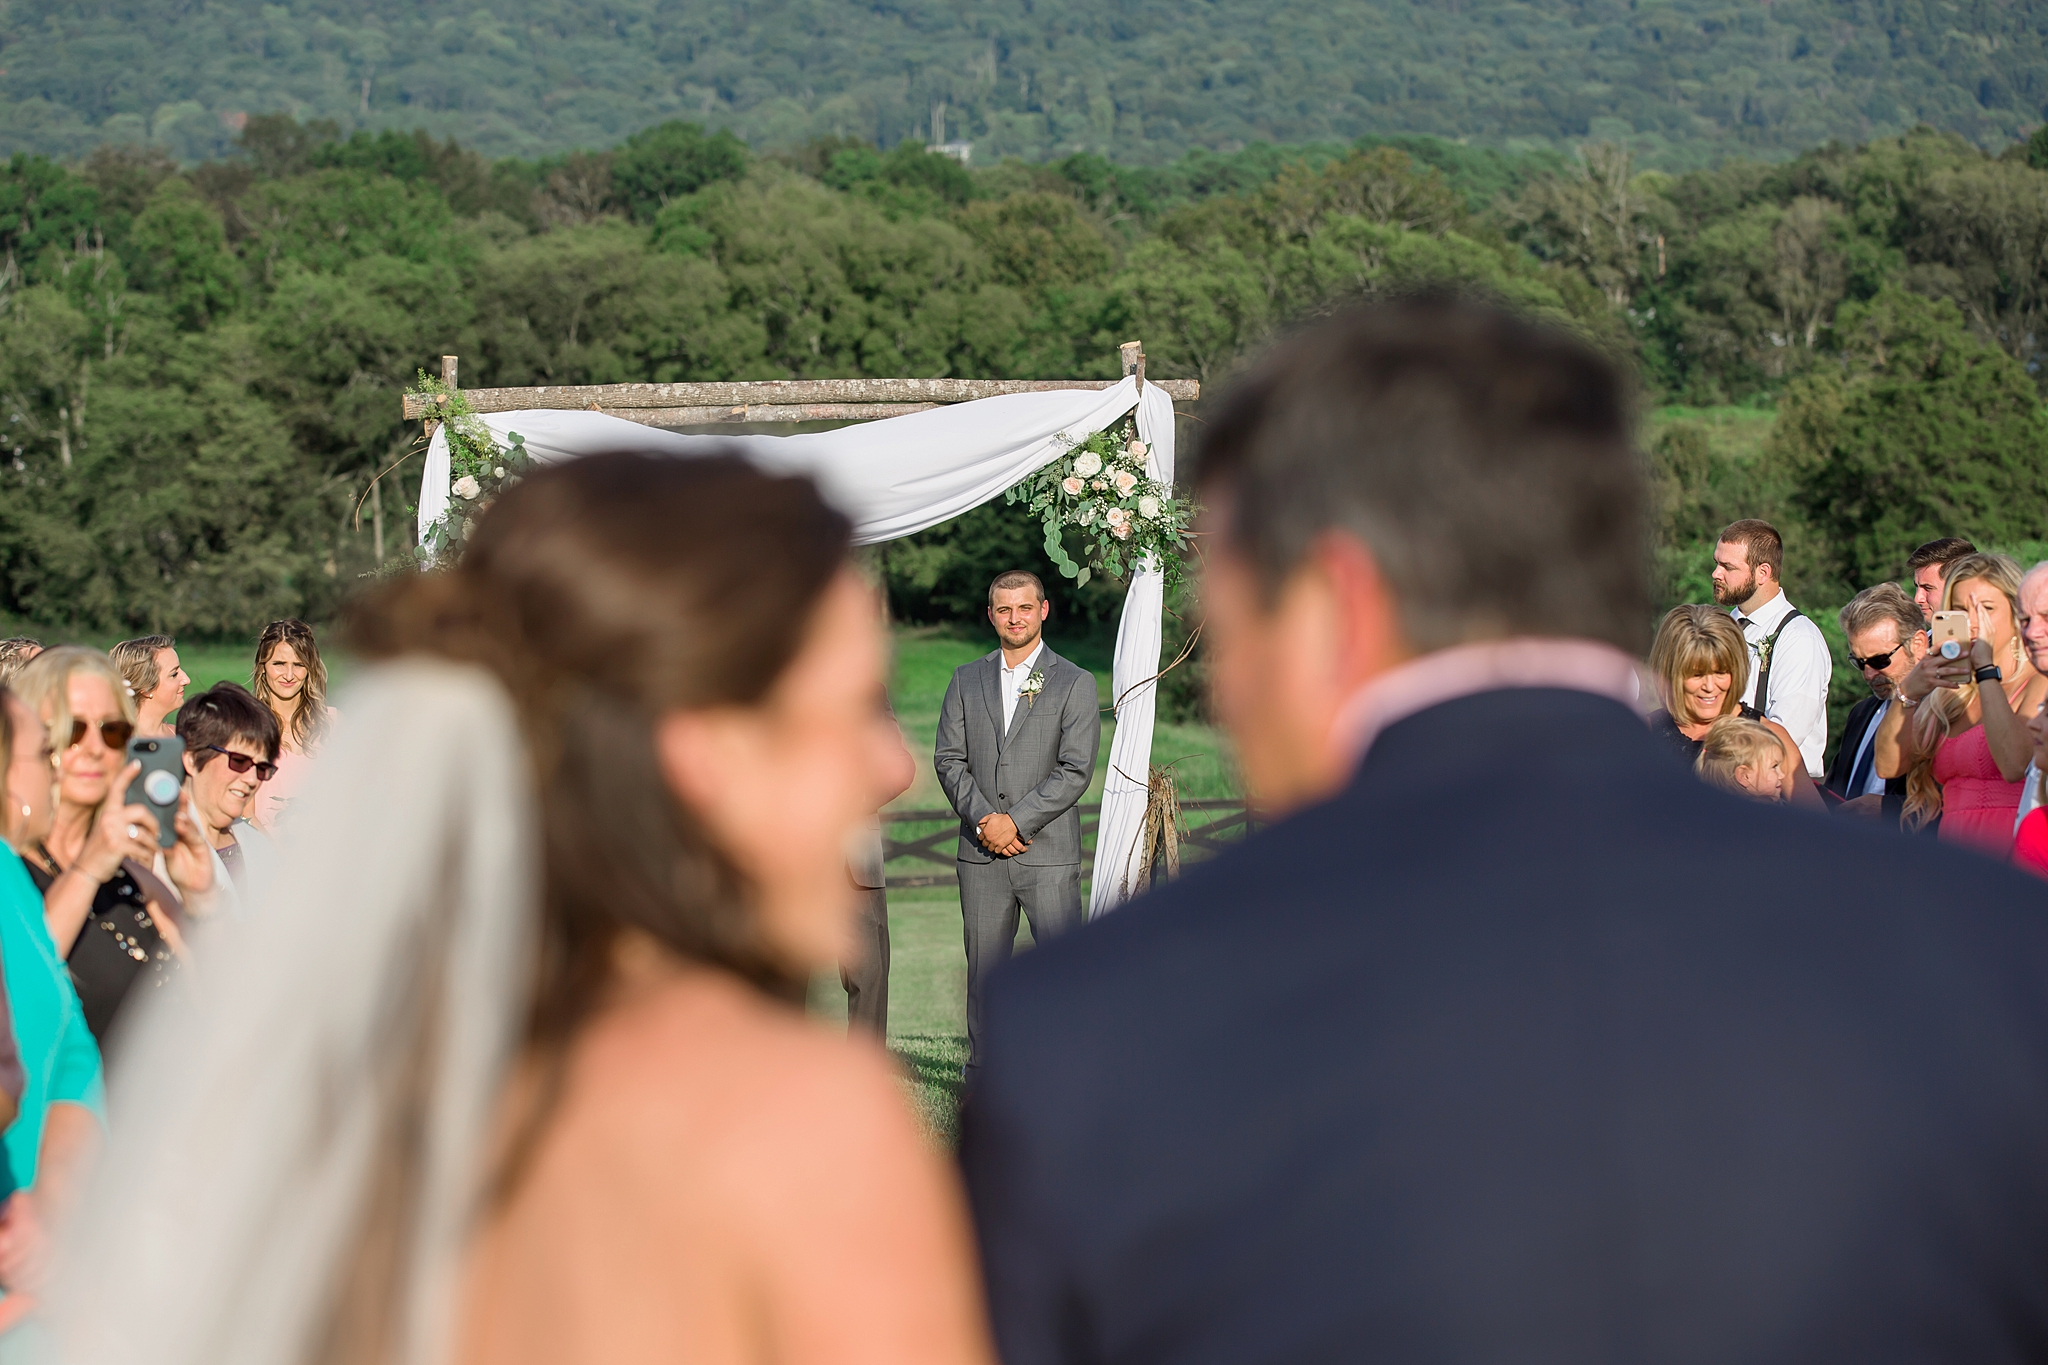 The Gray Dove Wedding Ceremony.jpg